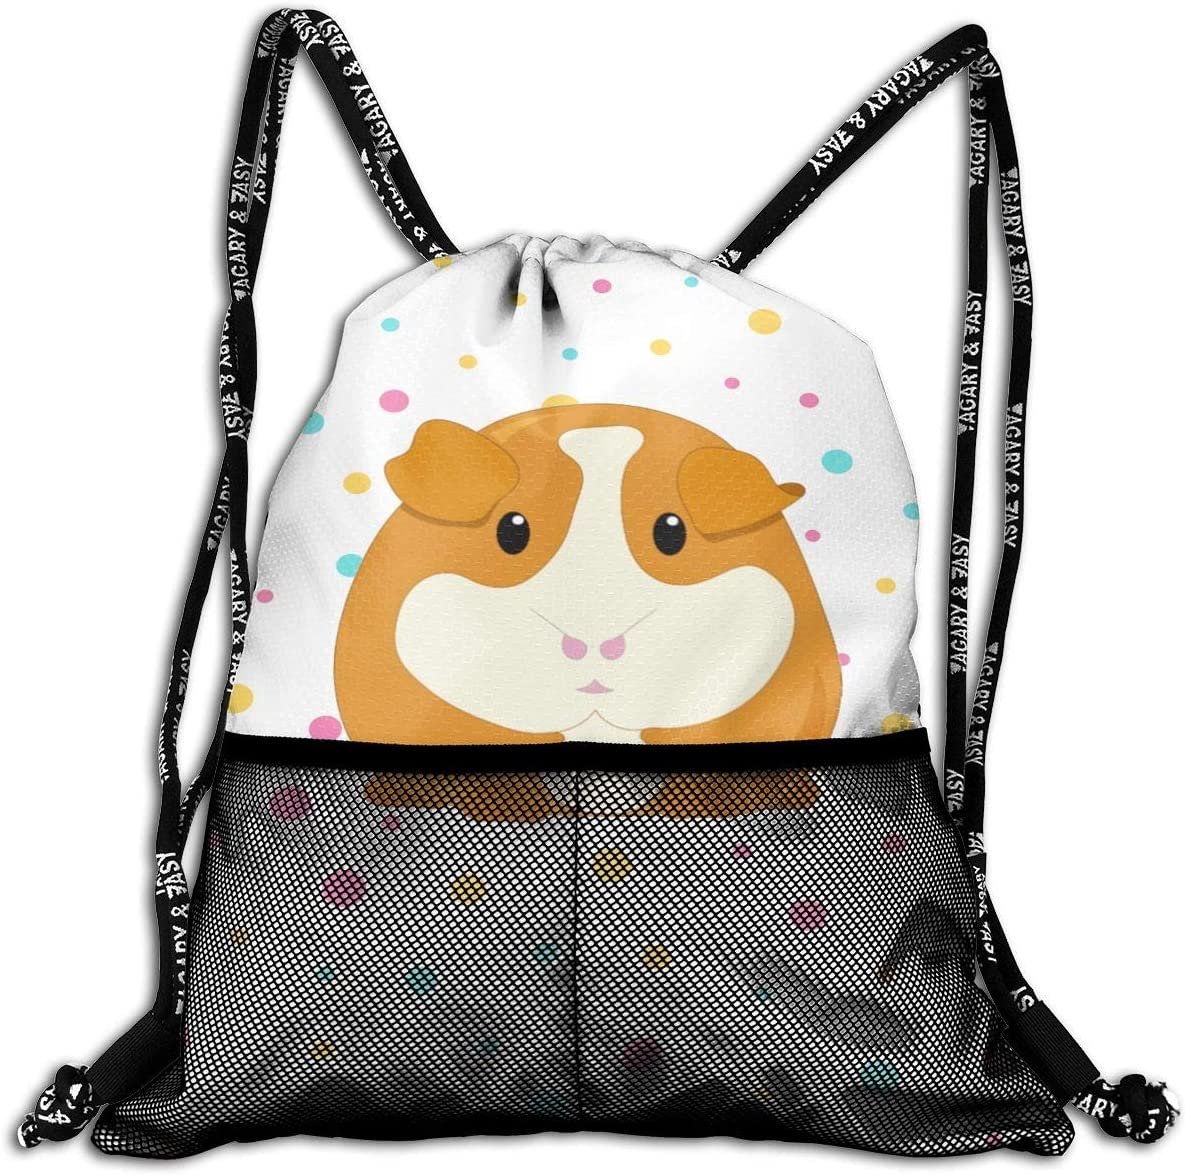 Drawstring Backpack Cute Guinea Pig Bags